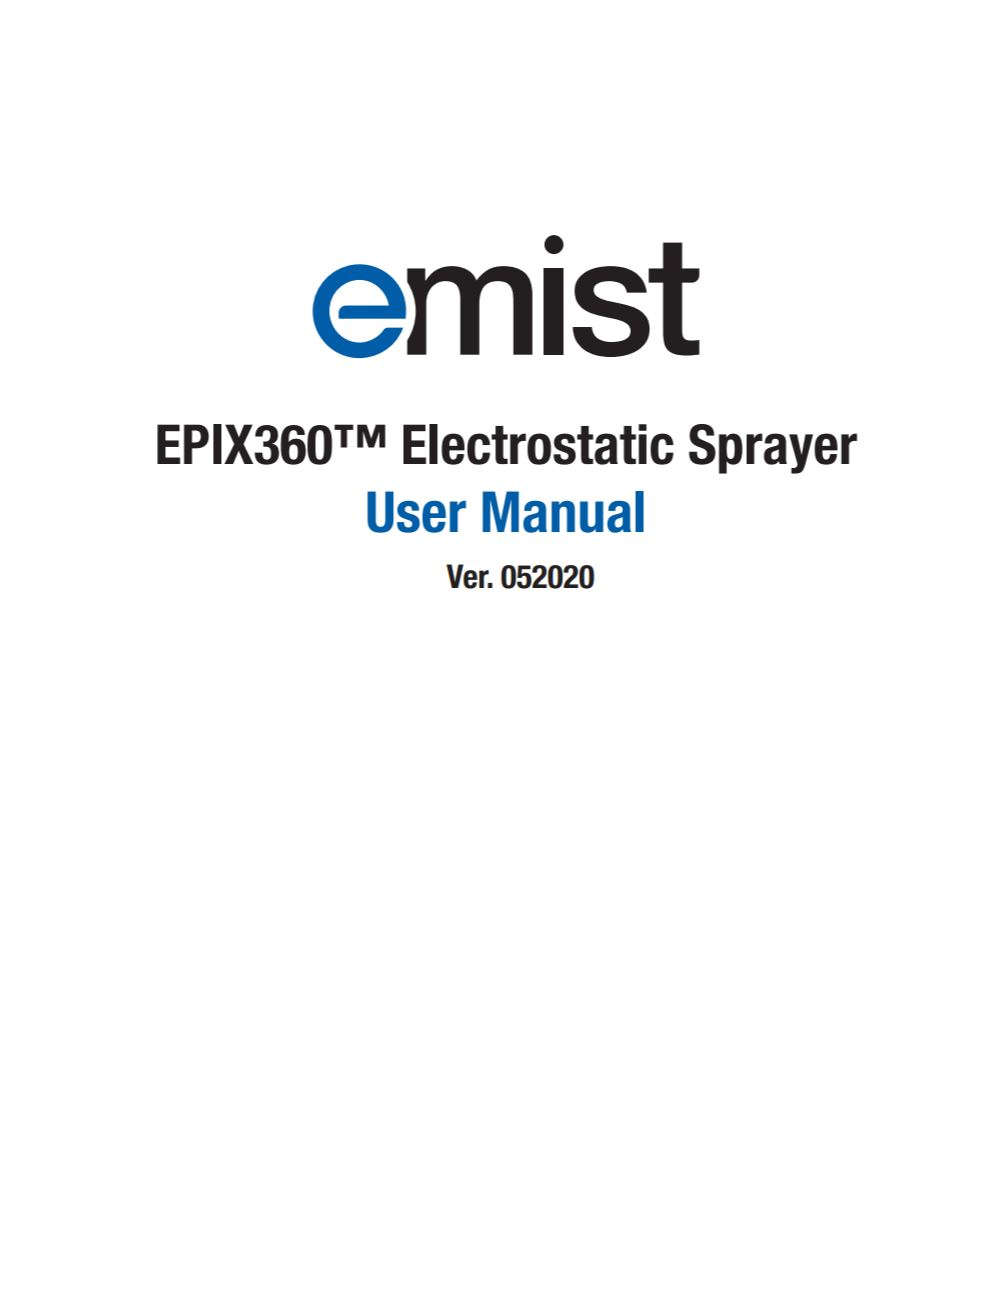 EMist EPIX360 User Manual PDF image thumbnail